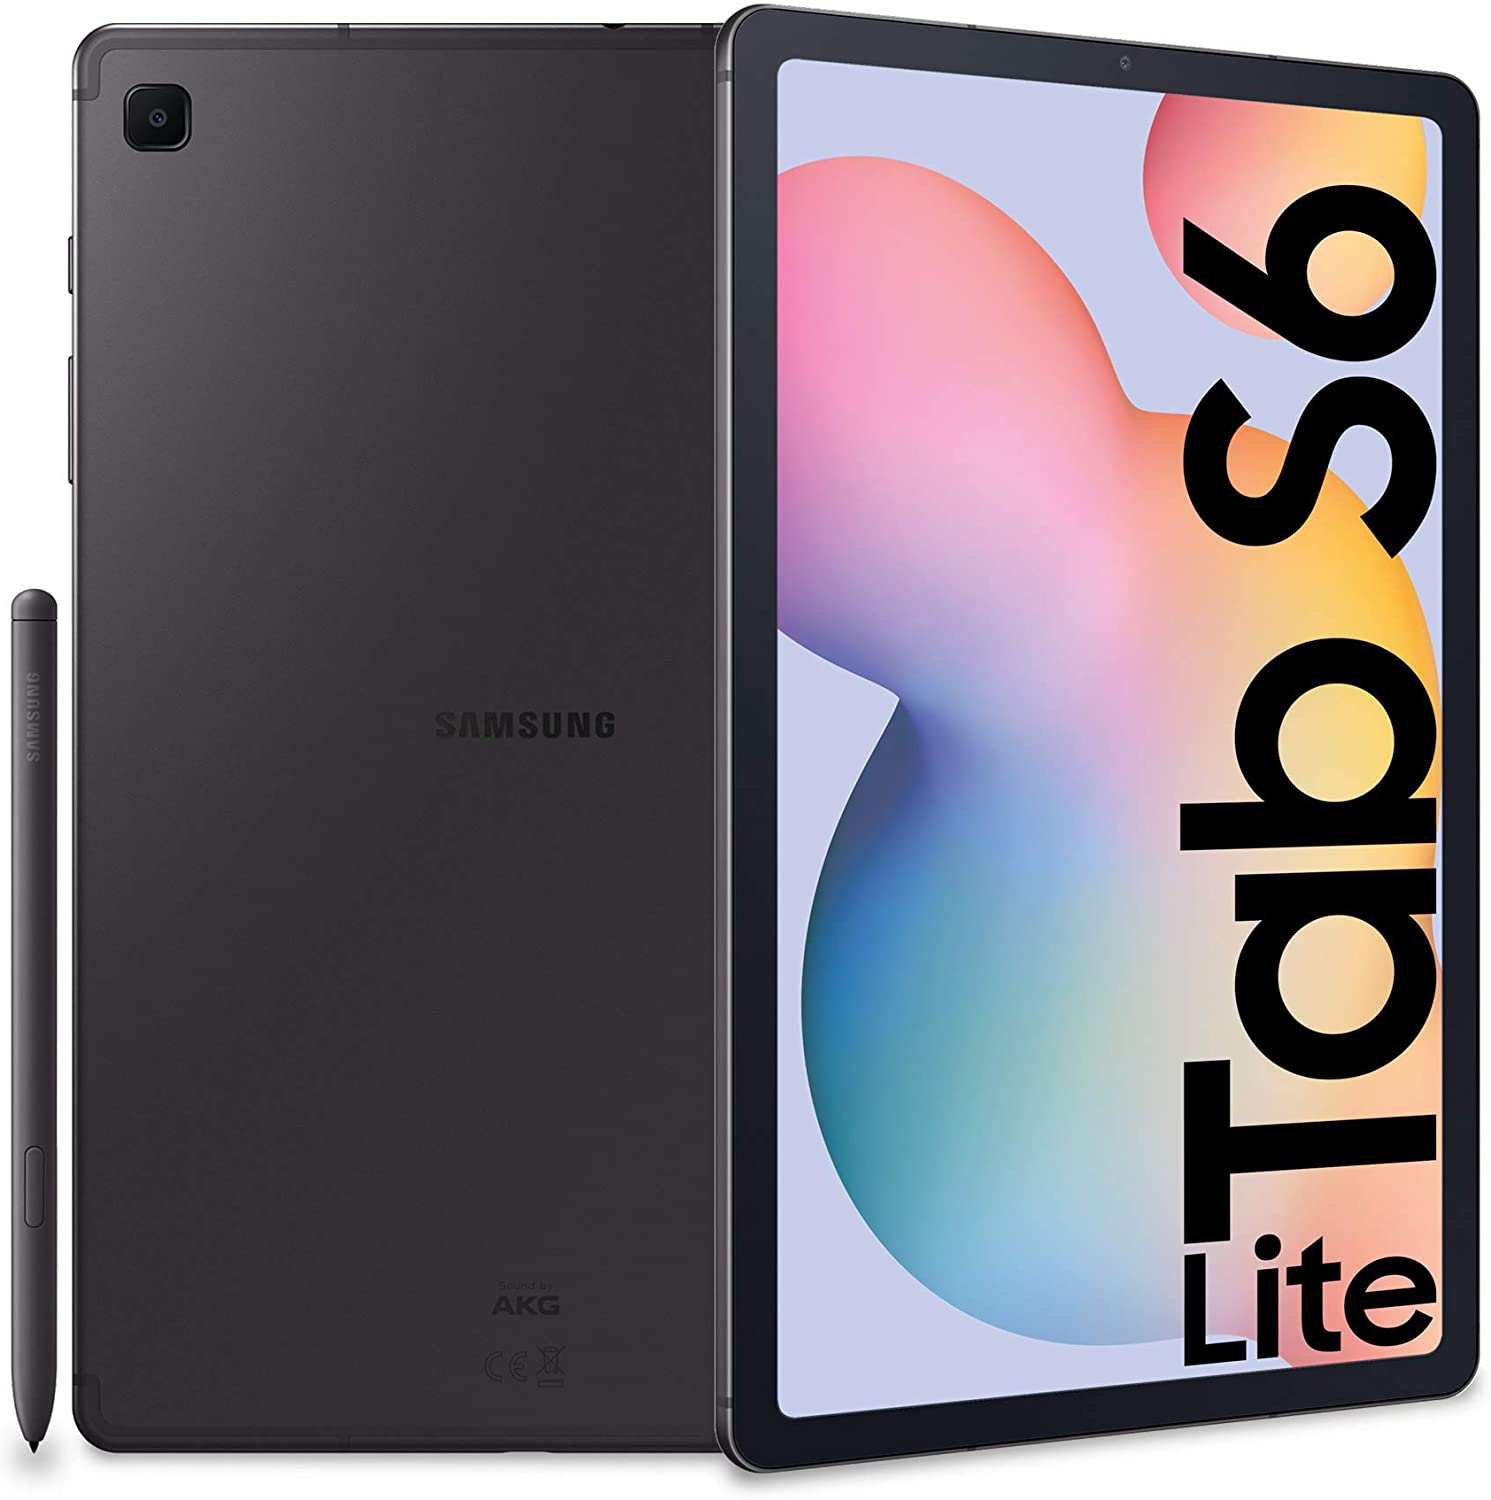 Tablet Samsung Galaxy Tab S6 Lite: differenza tra versione LTE e Wi-Fi